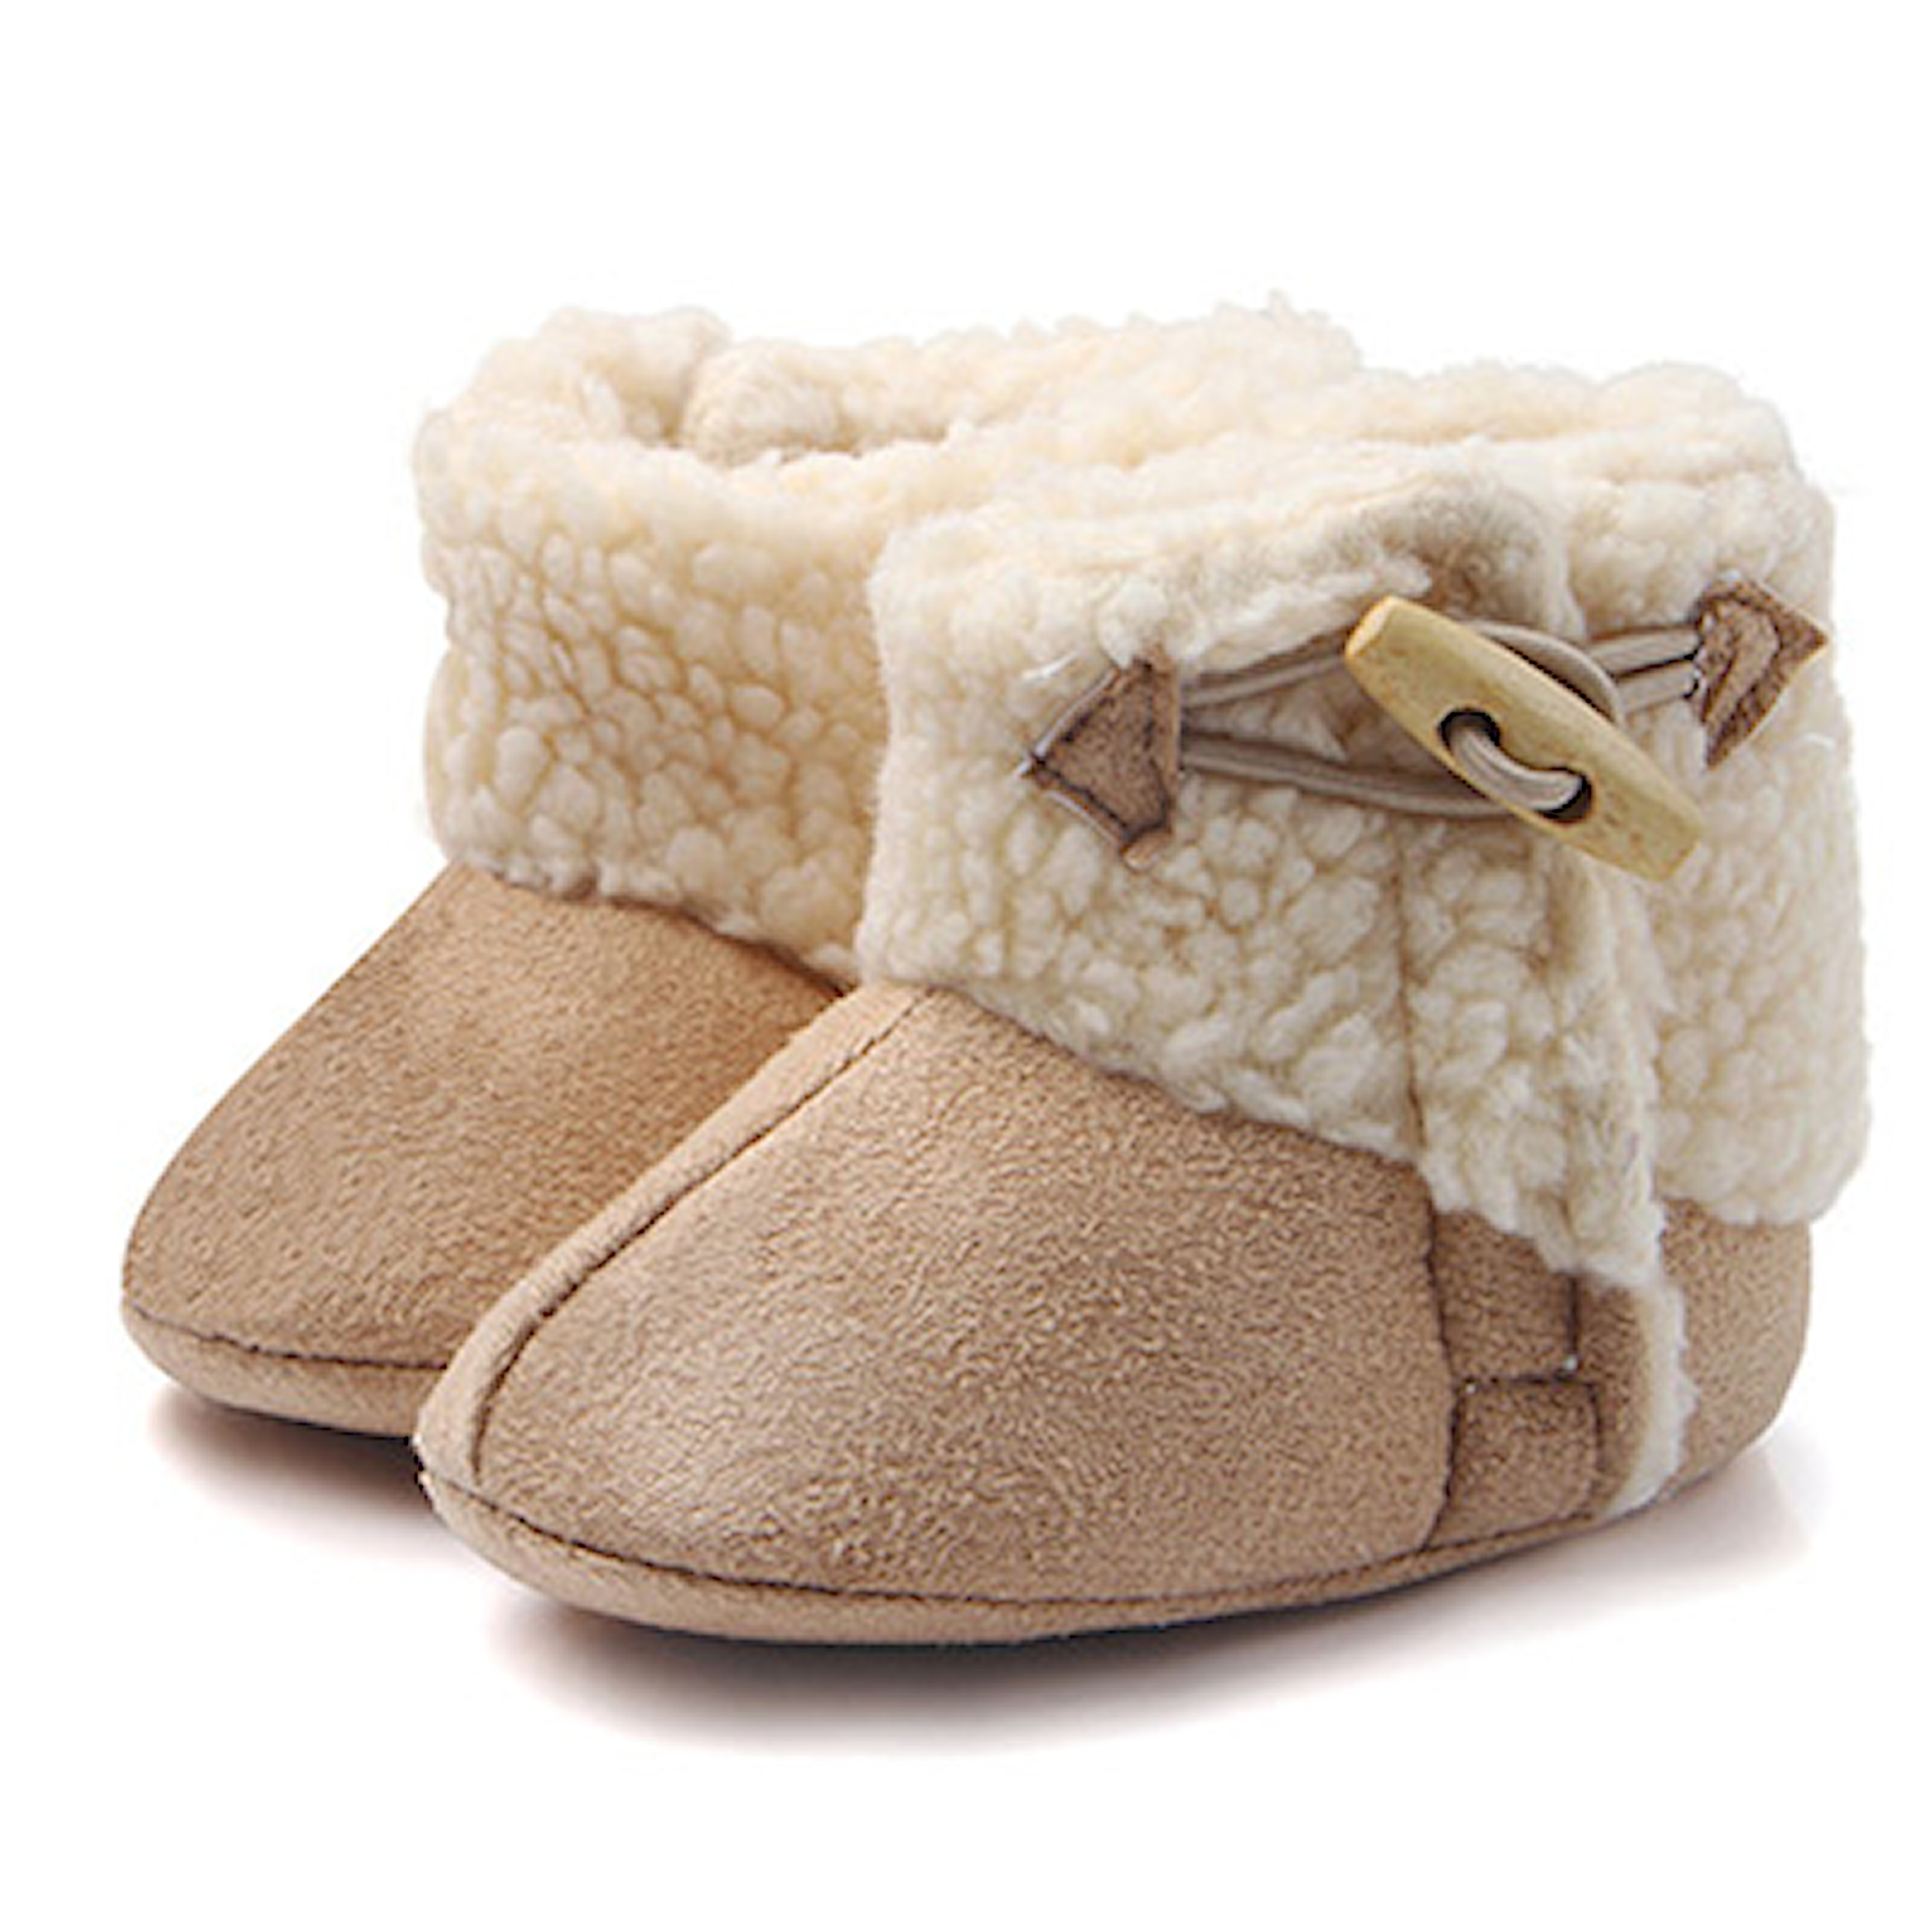 Beige, 13, Baby Winter Booties, Boots i barnmodell, ,